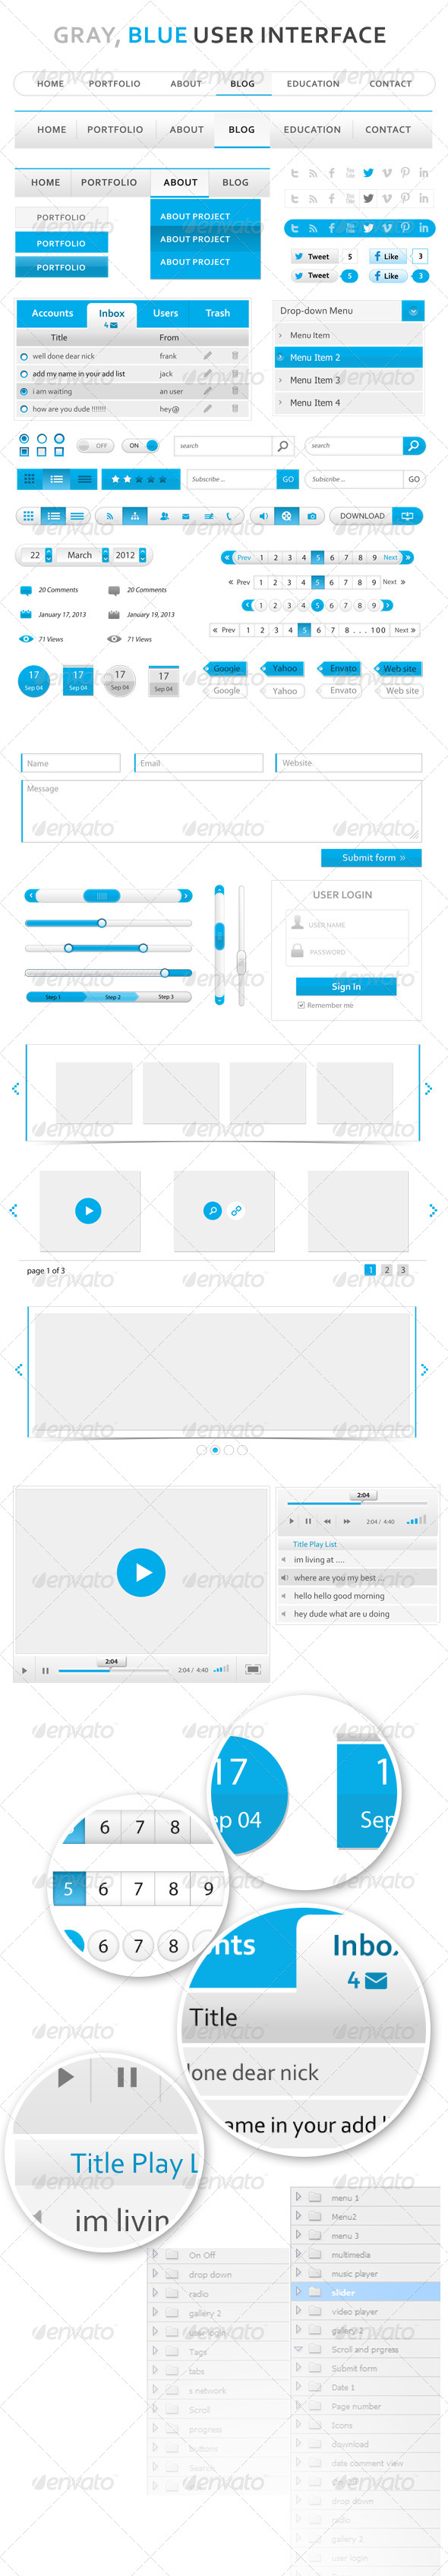 GraphicRiver Gray Blue User Interface 4494948